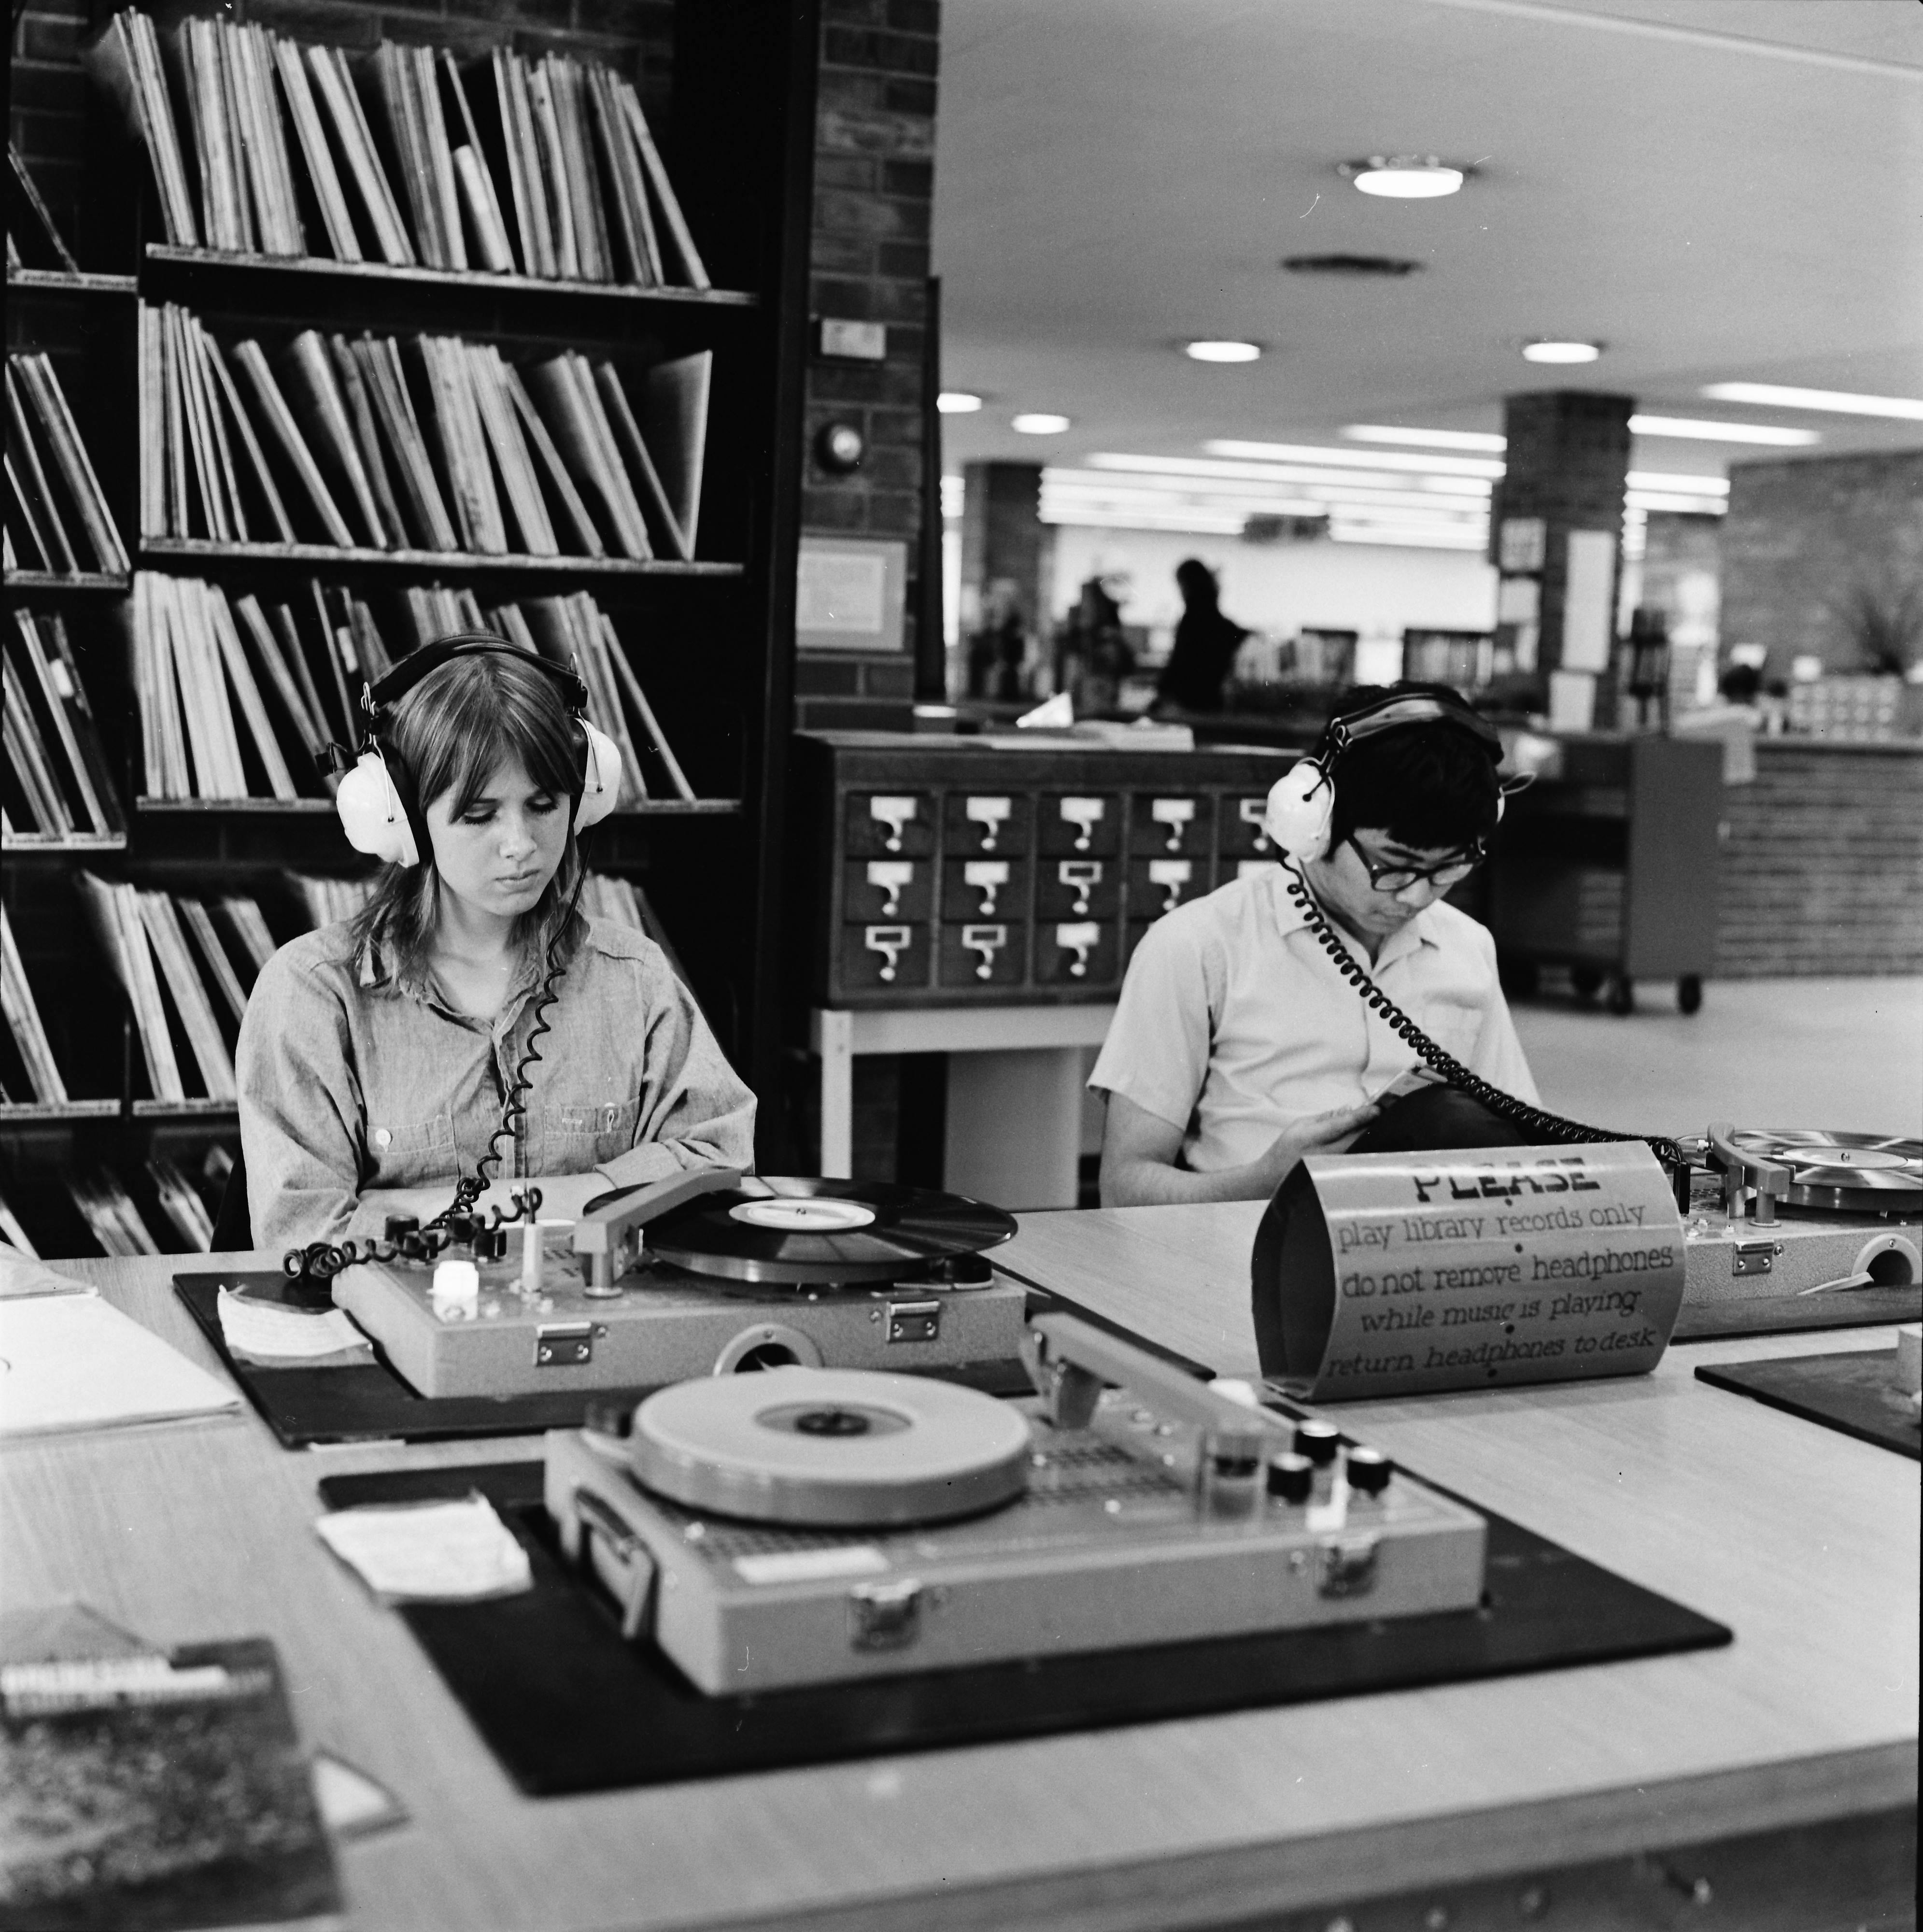 University of Michigan Students Using Ann Arbor Public Library Phonographs, April 1971 image